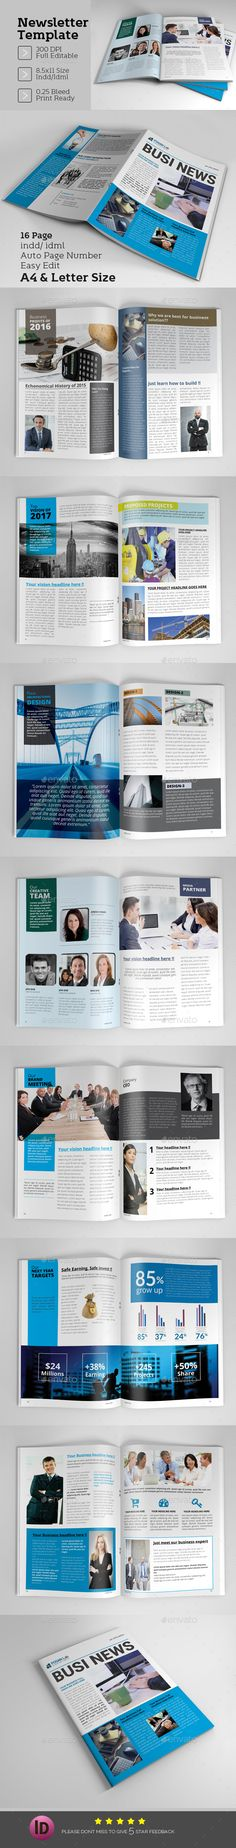 Newsletter Template  Newsletter Templates Print  And Advertising